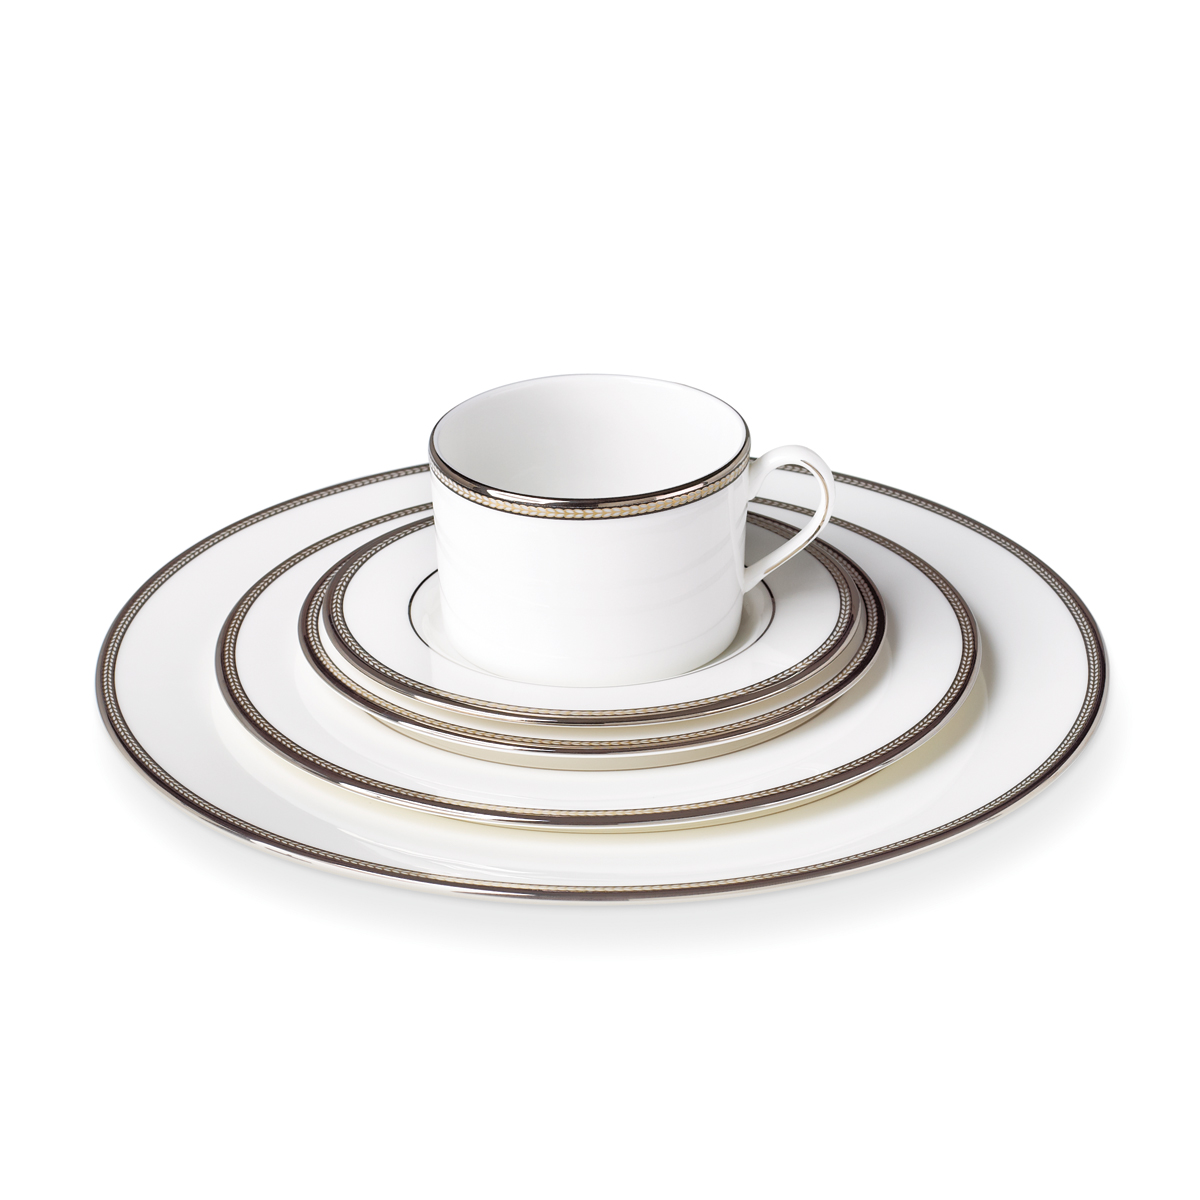 Lenox China kate spade Sonora Knot, 5 Piece Place Setting